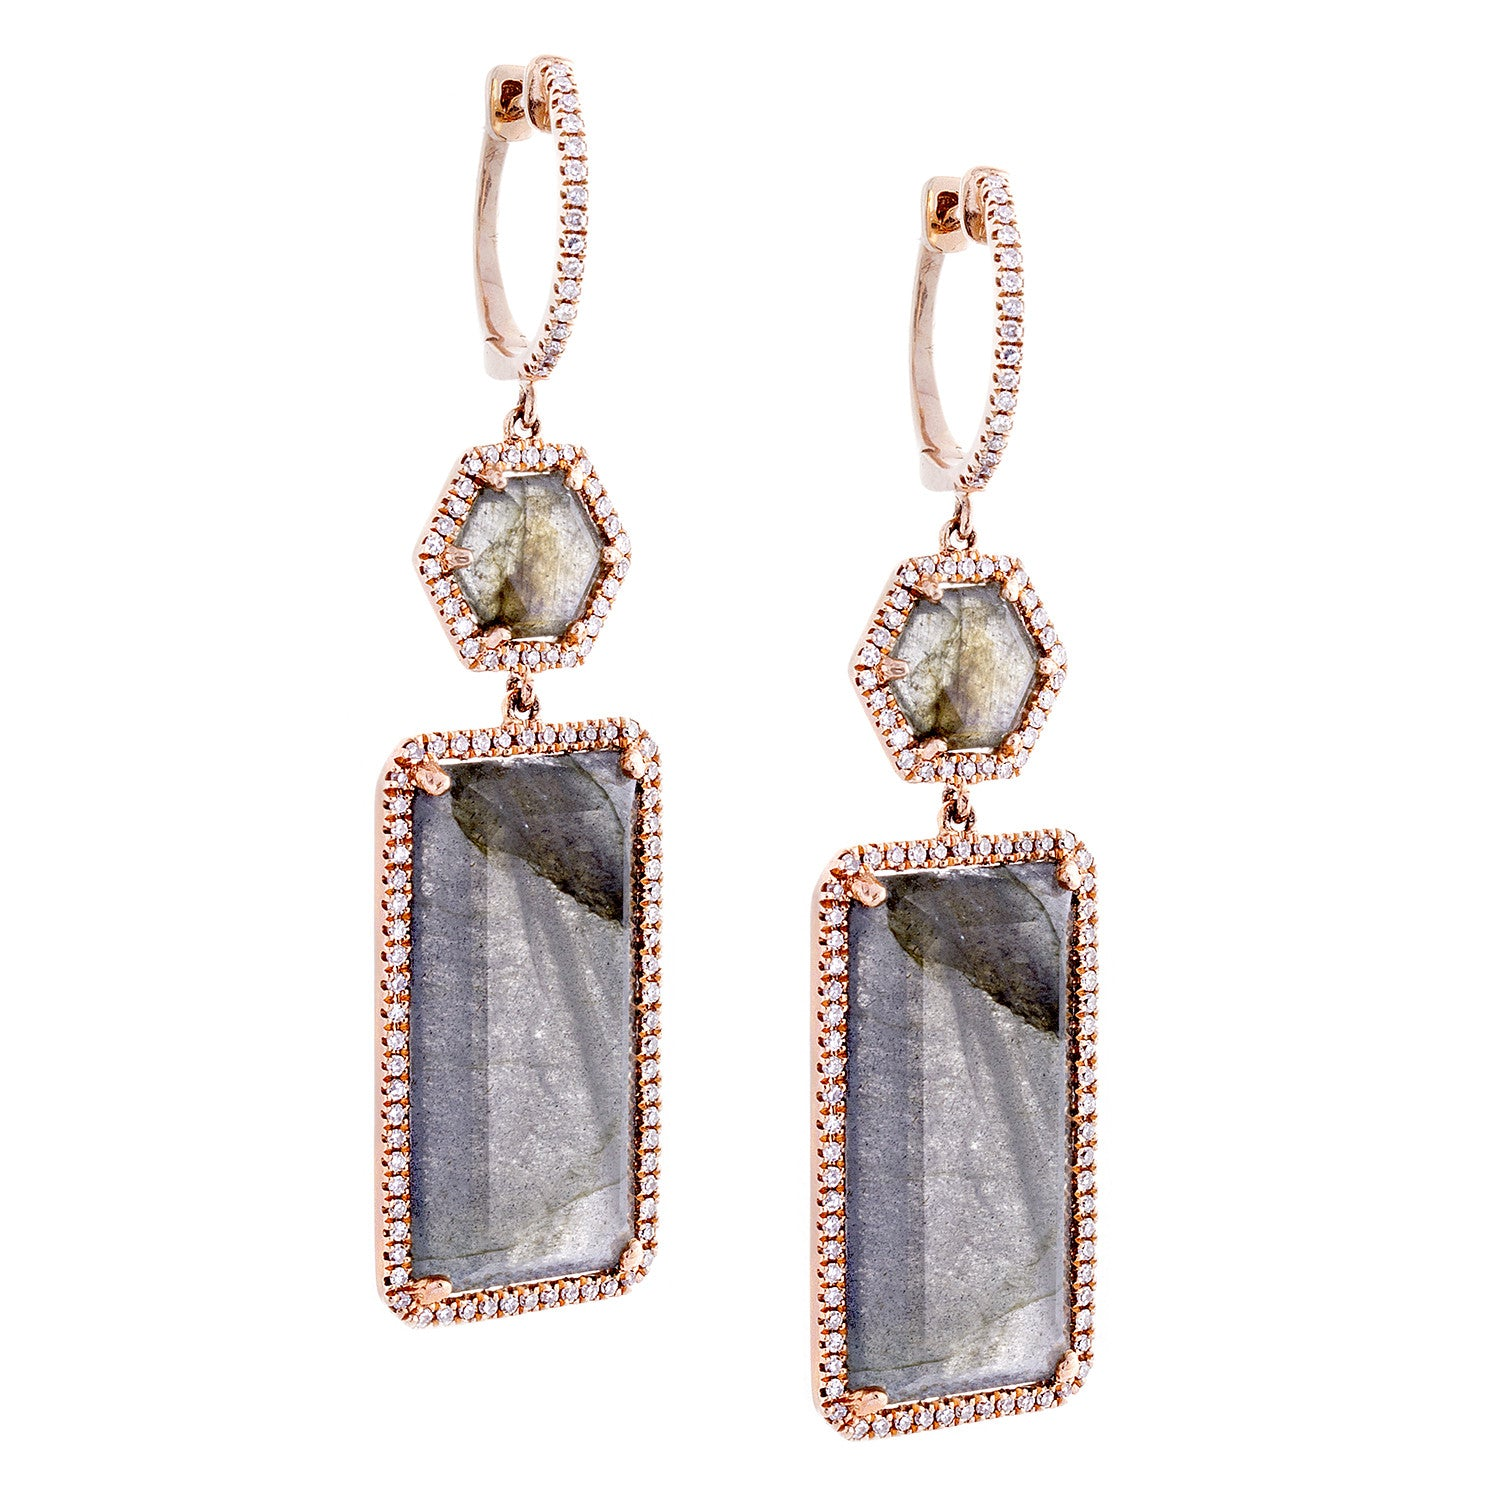 Labrodorite & Pavé Diamond 14K Rose Gold Drop Earrings - SOLD/CAN BE SPECIAL ORDERED WITH 4-6 WEEKS DELIVERY TIME FRAME